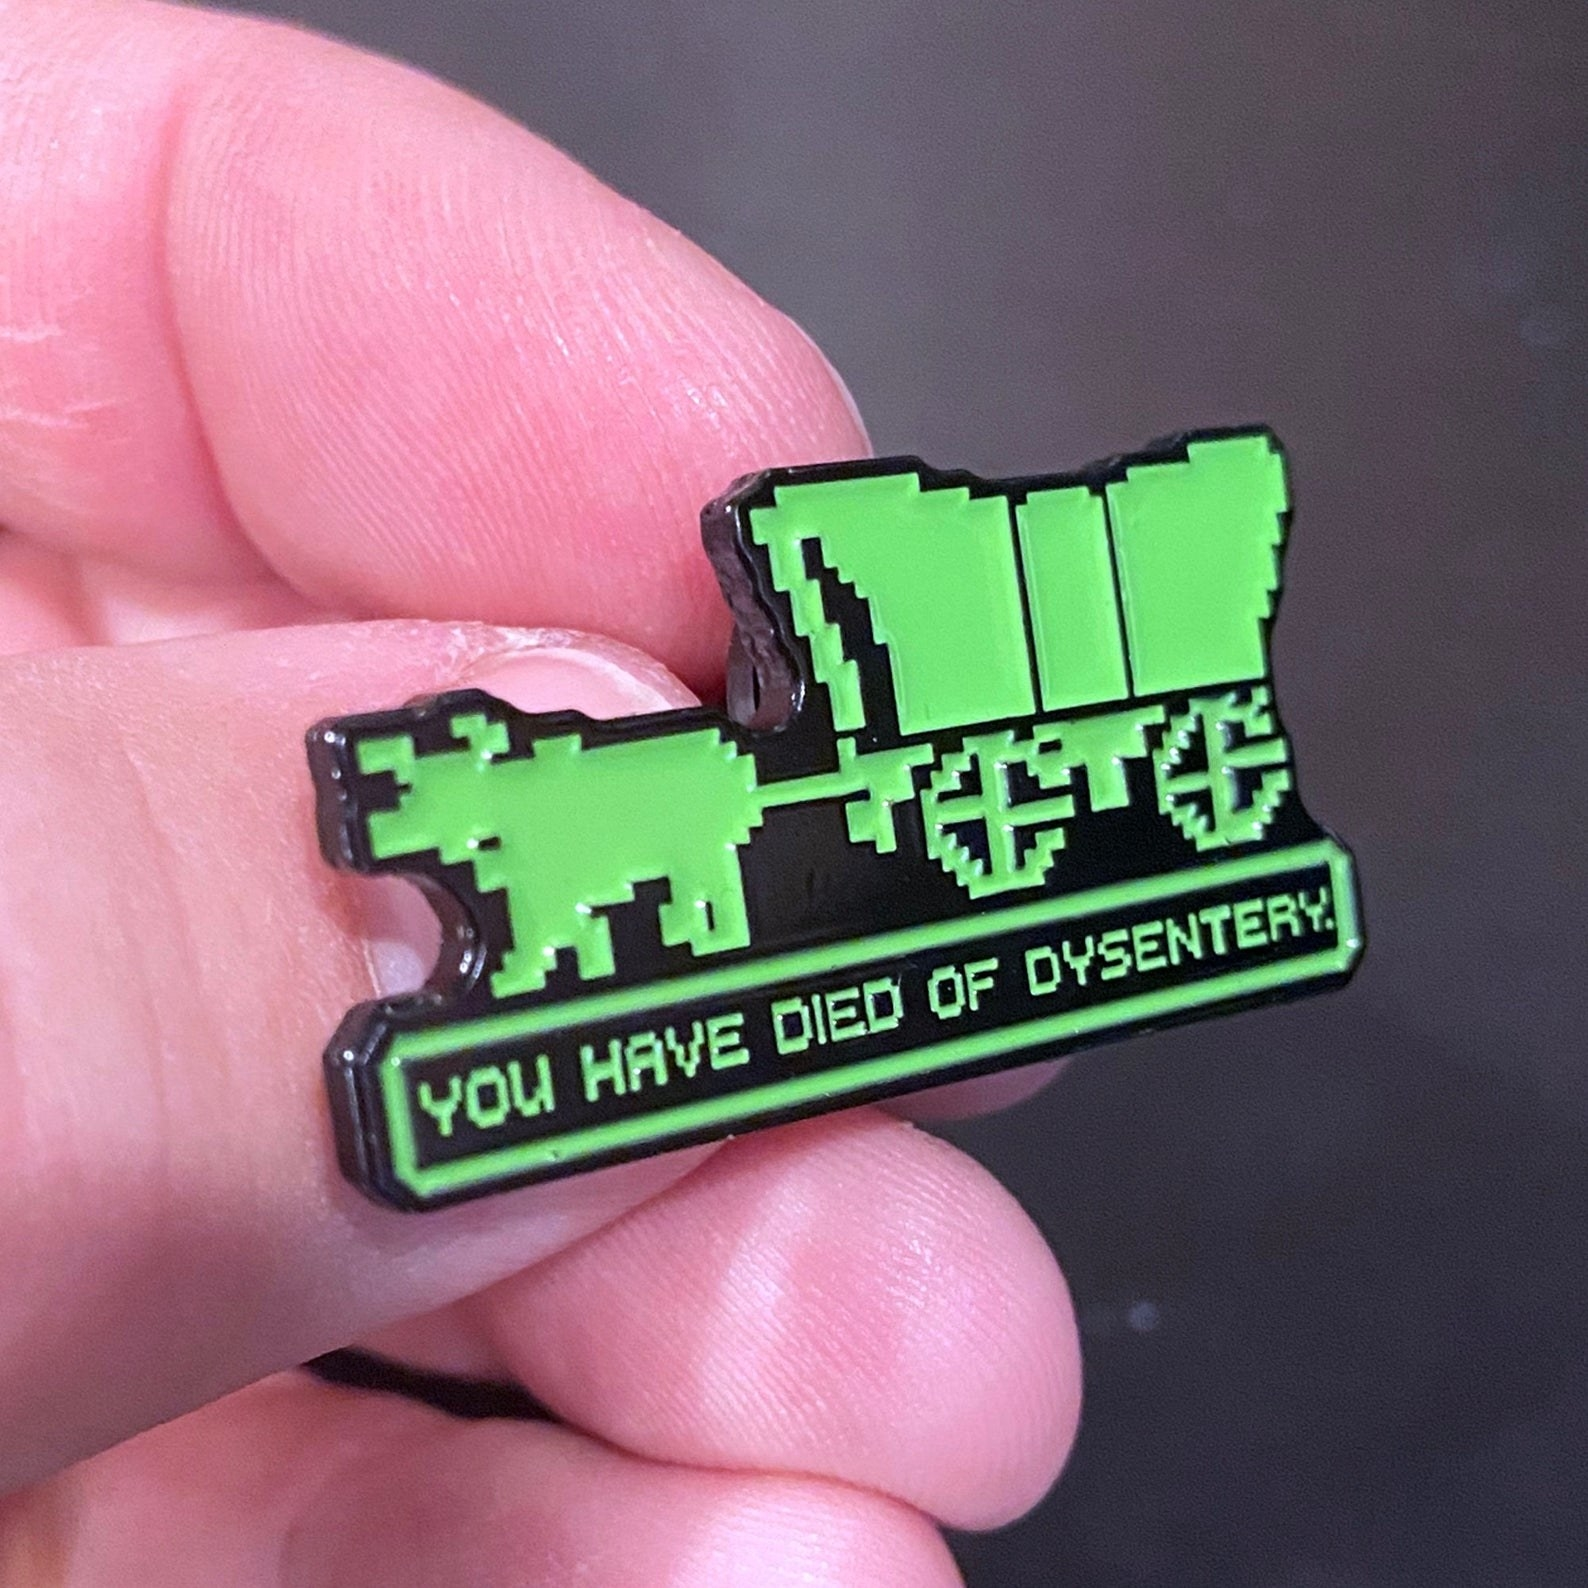 """a green pin shaped like a horse and carriage that says """"you have died of dysentery"""" under it"""